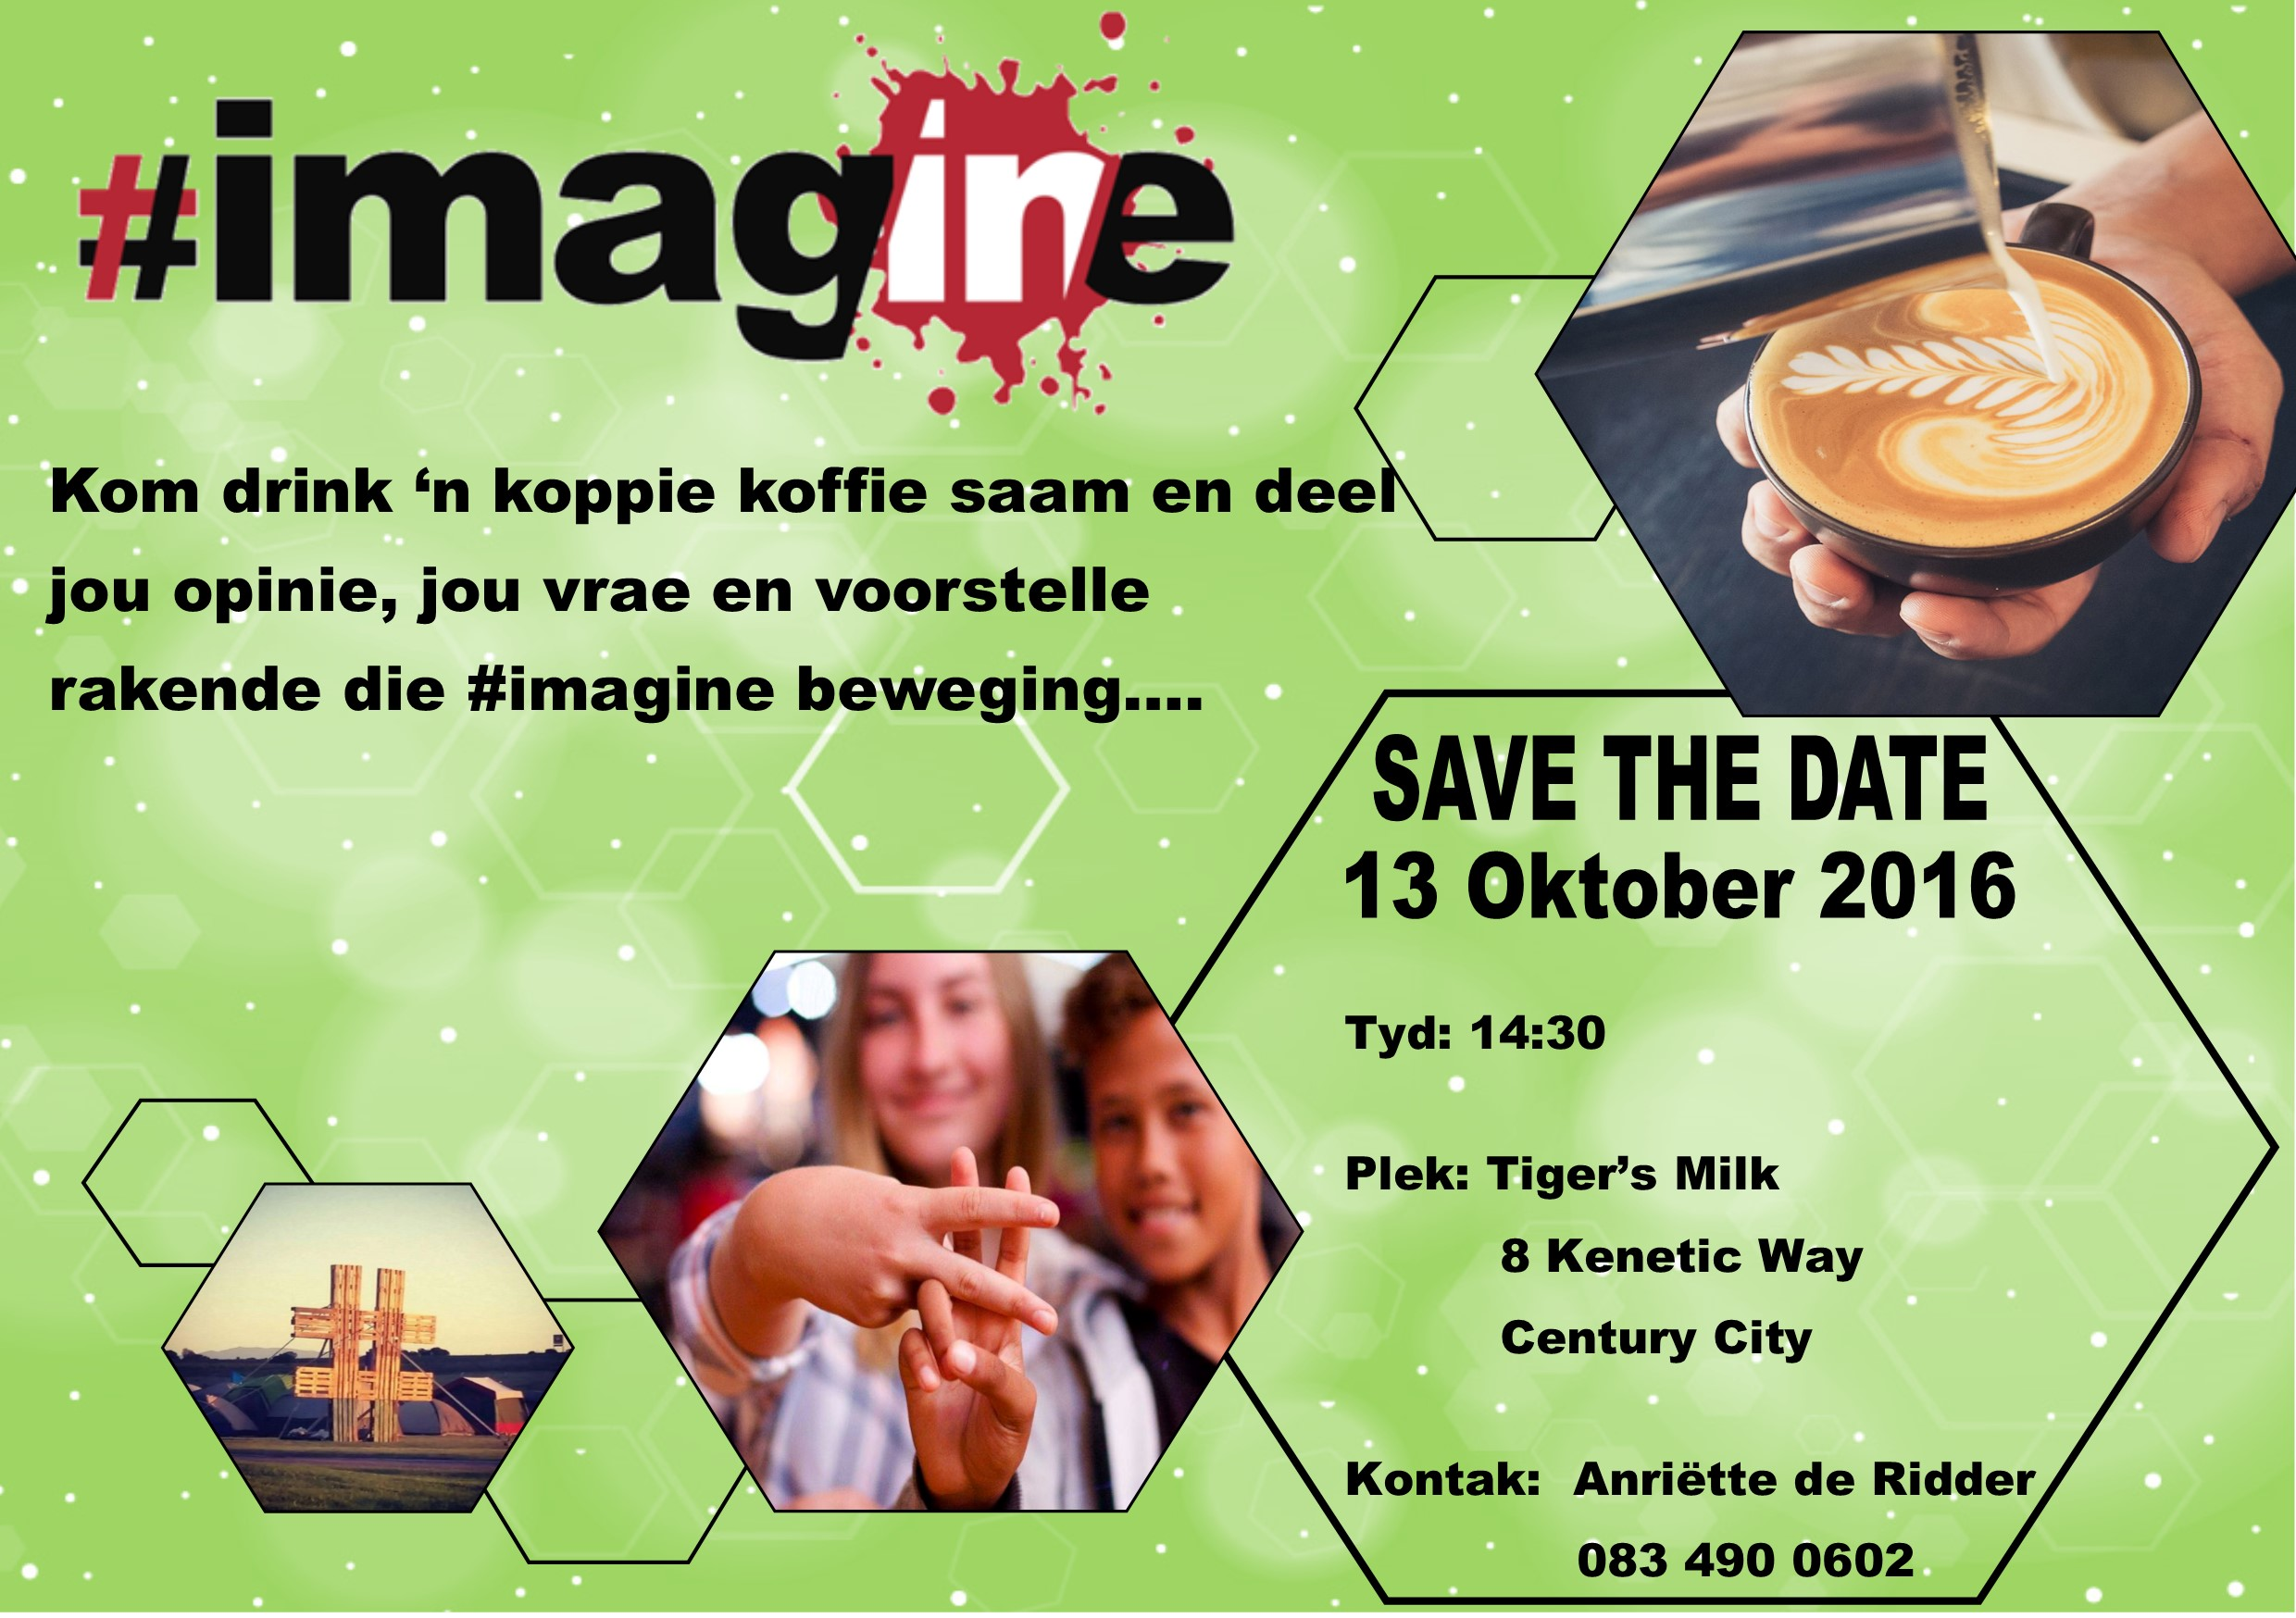 imagine-koffie-info